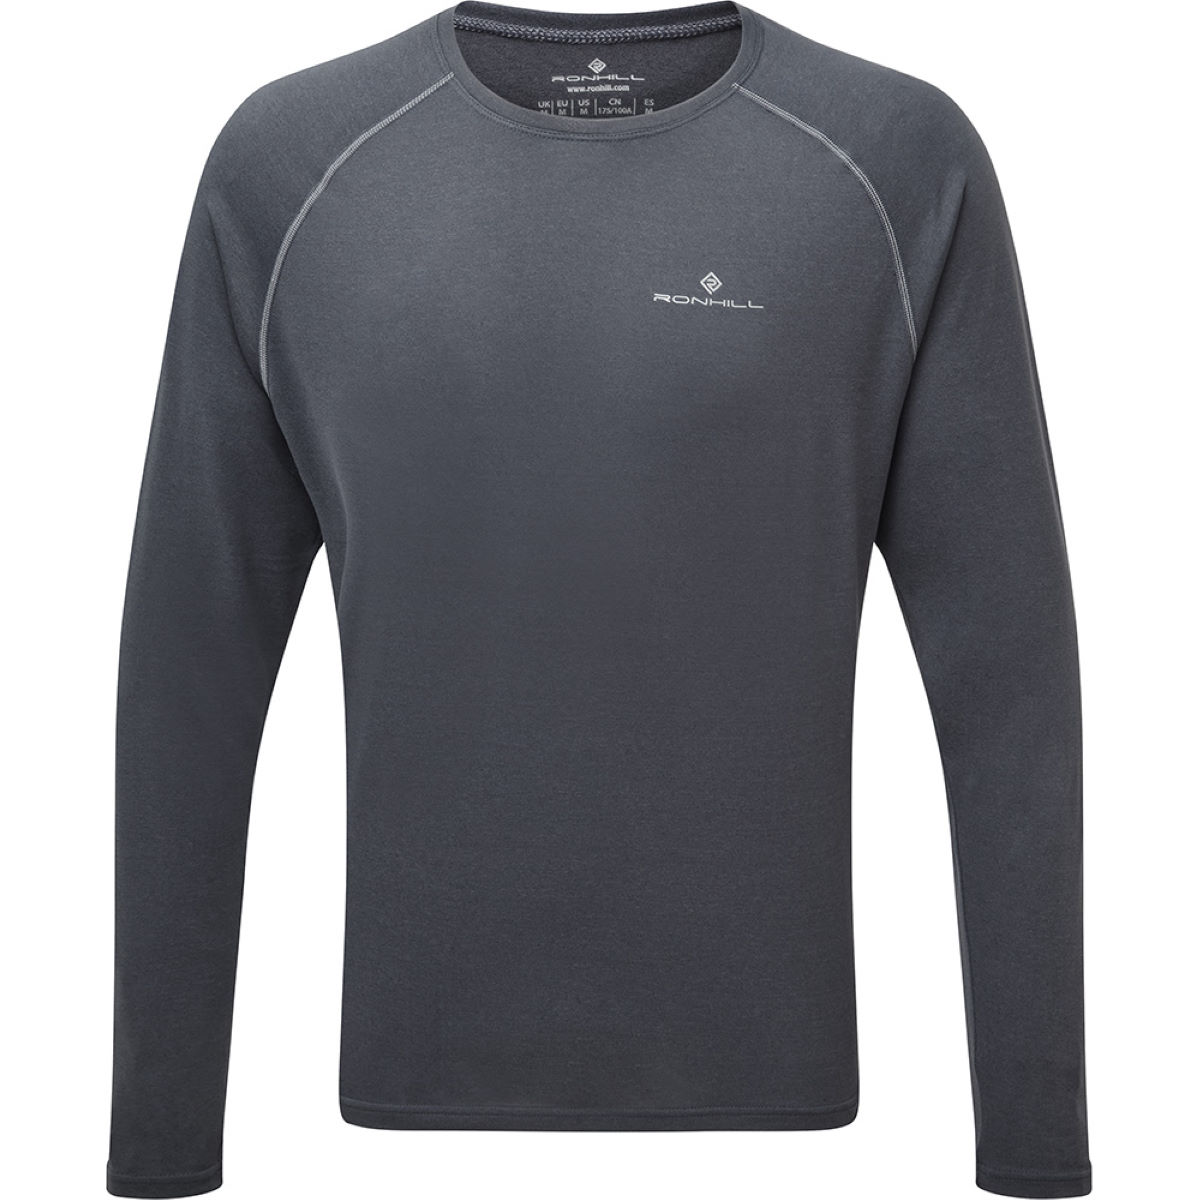 Ronhill Ronhill Everyday Long Sleeve Tee   Long Sleeve Running Tops